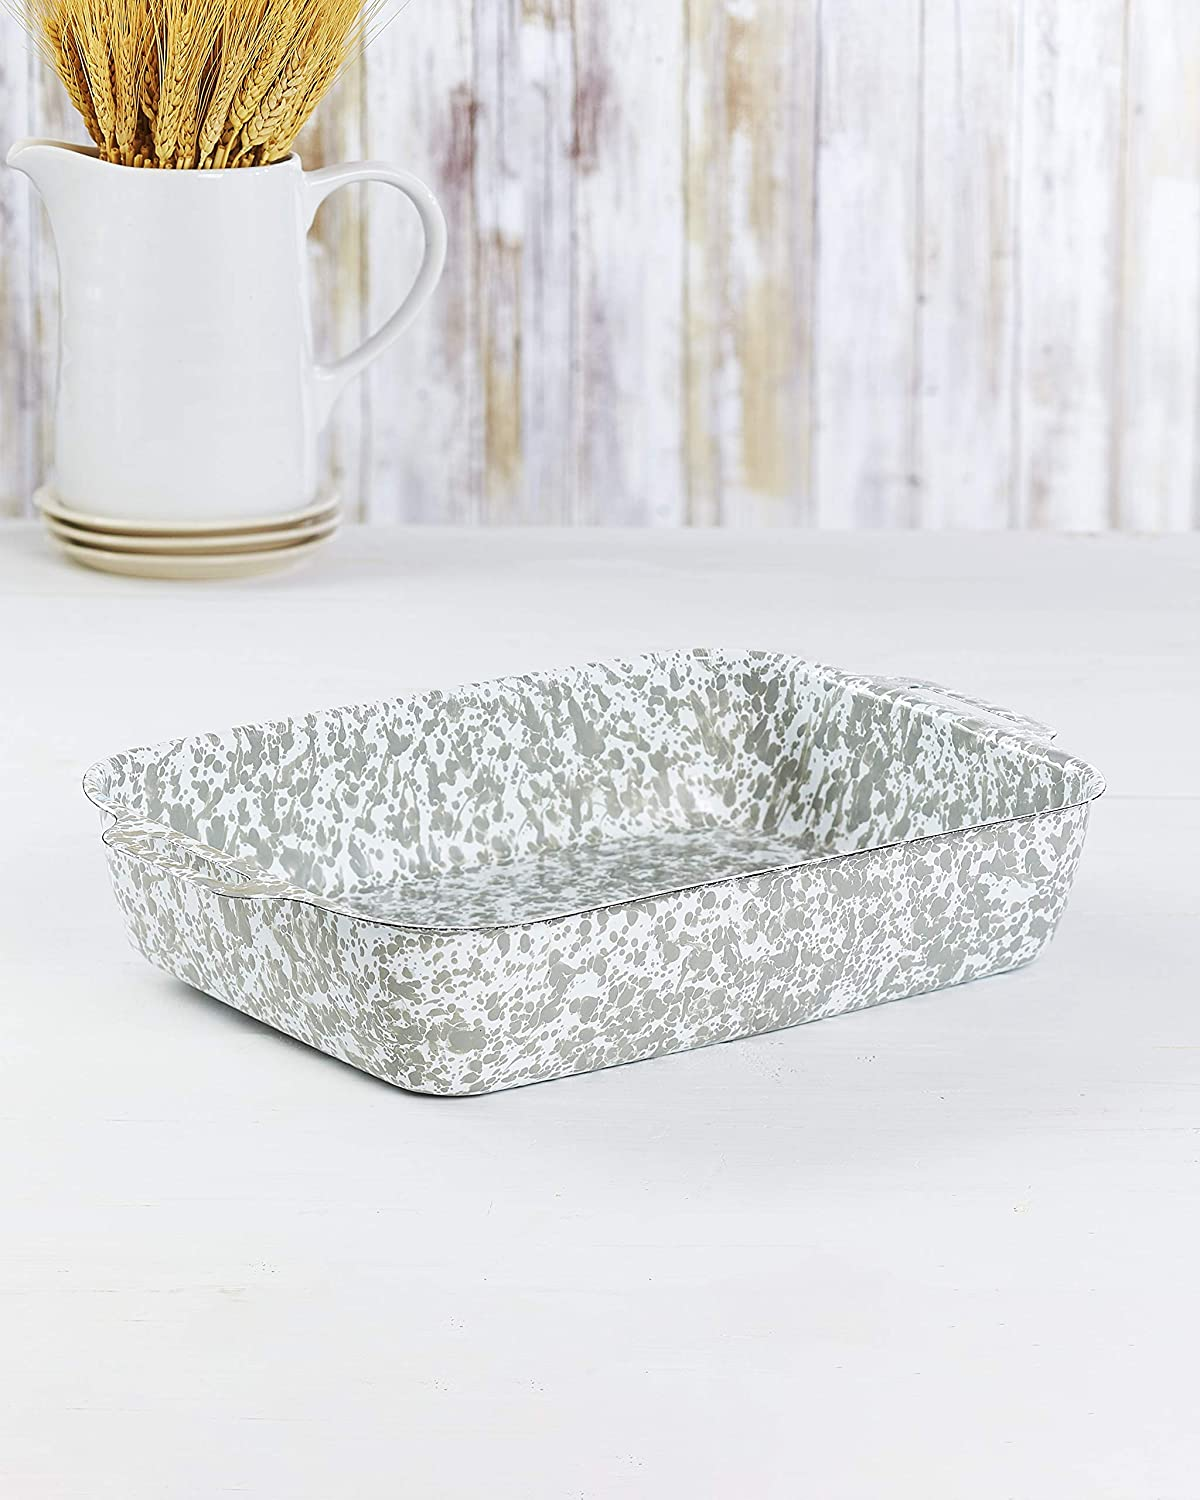 Enamel Coated Metal Bakers Dish - Stylish Speckled Paint Scheme - Green